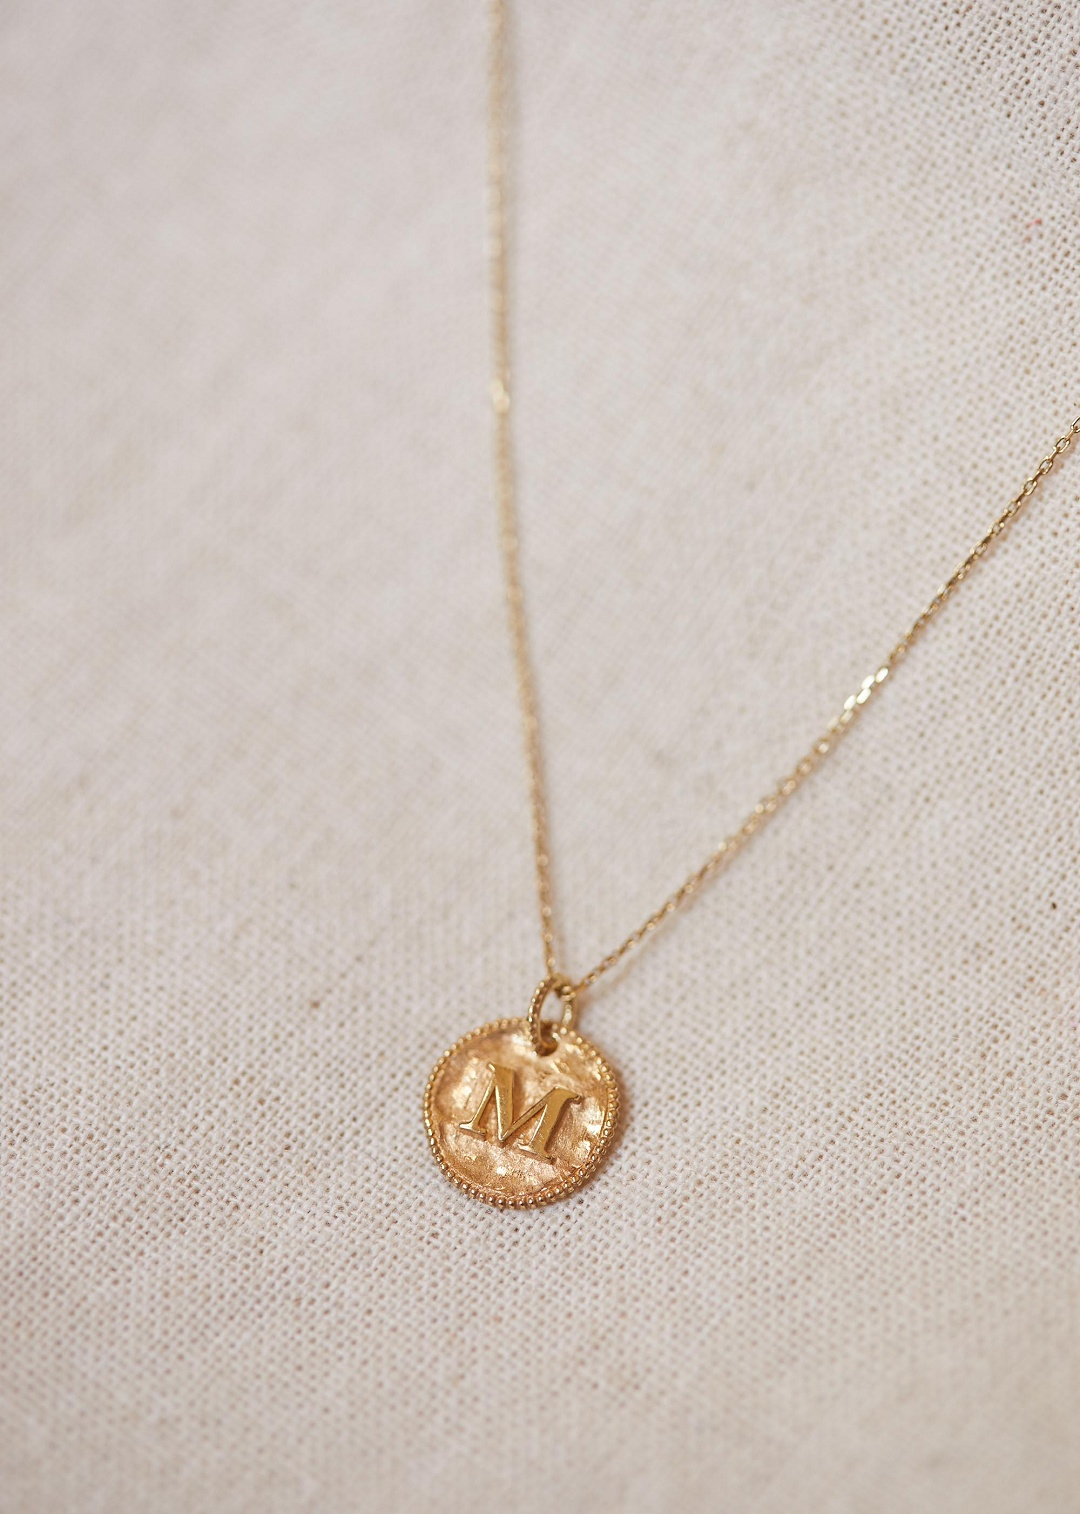 Sézane – Sara Pendant – Letters I To P Within Most Popular Letter K Alphabet Locket Element Necklaces (Gallery 14 of 25)